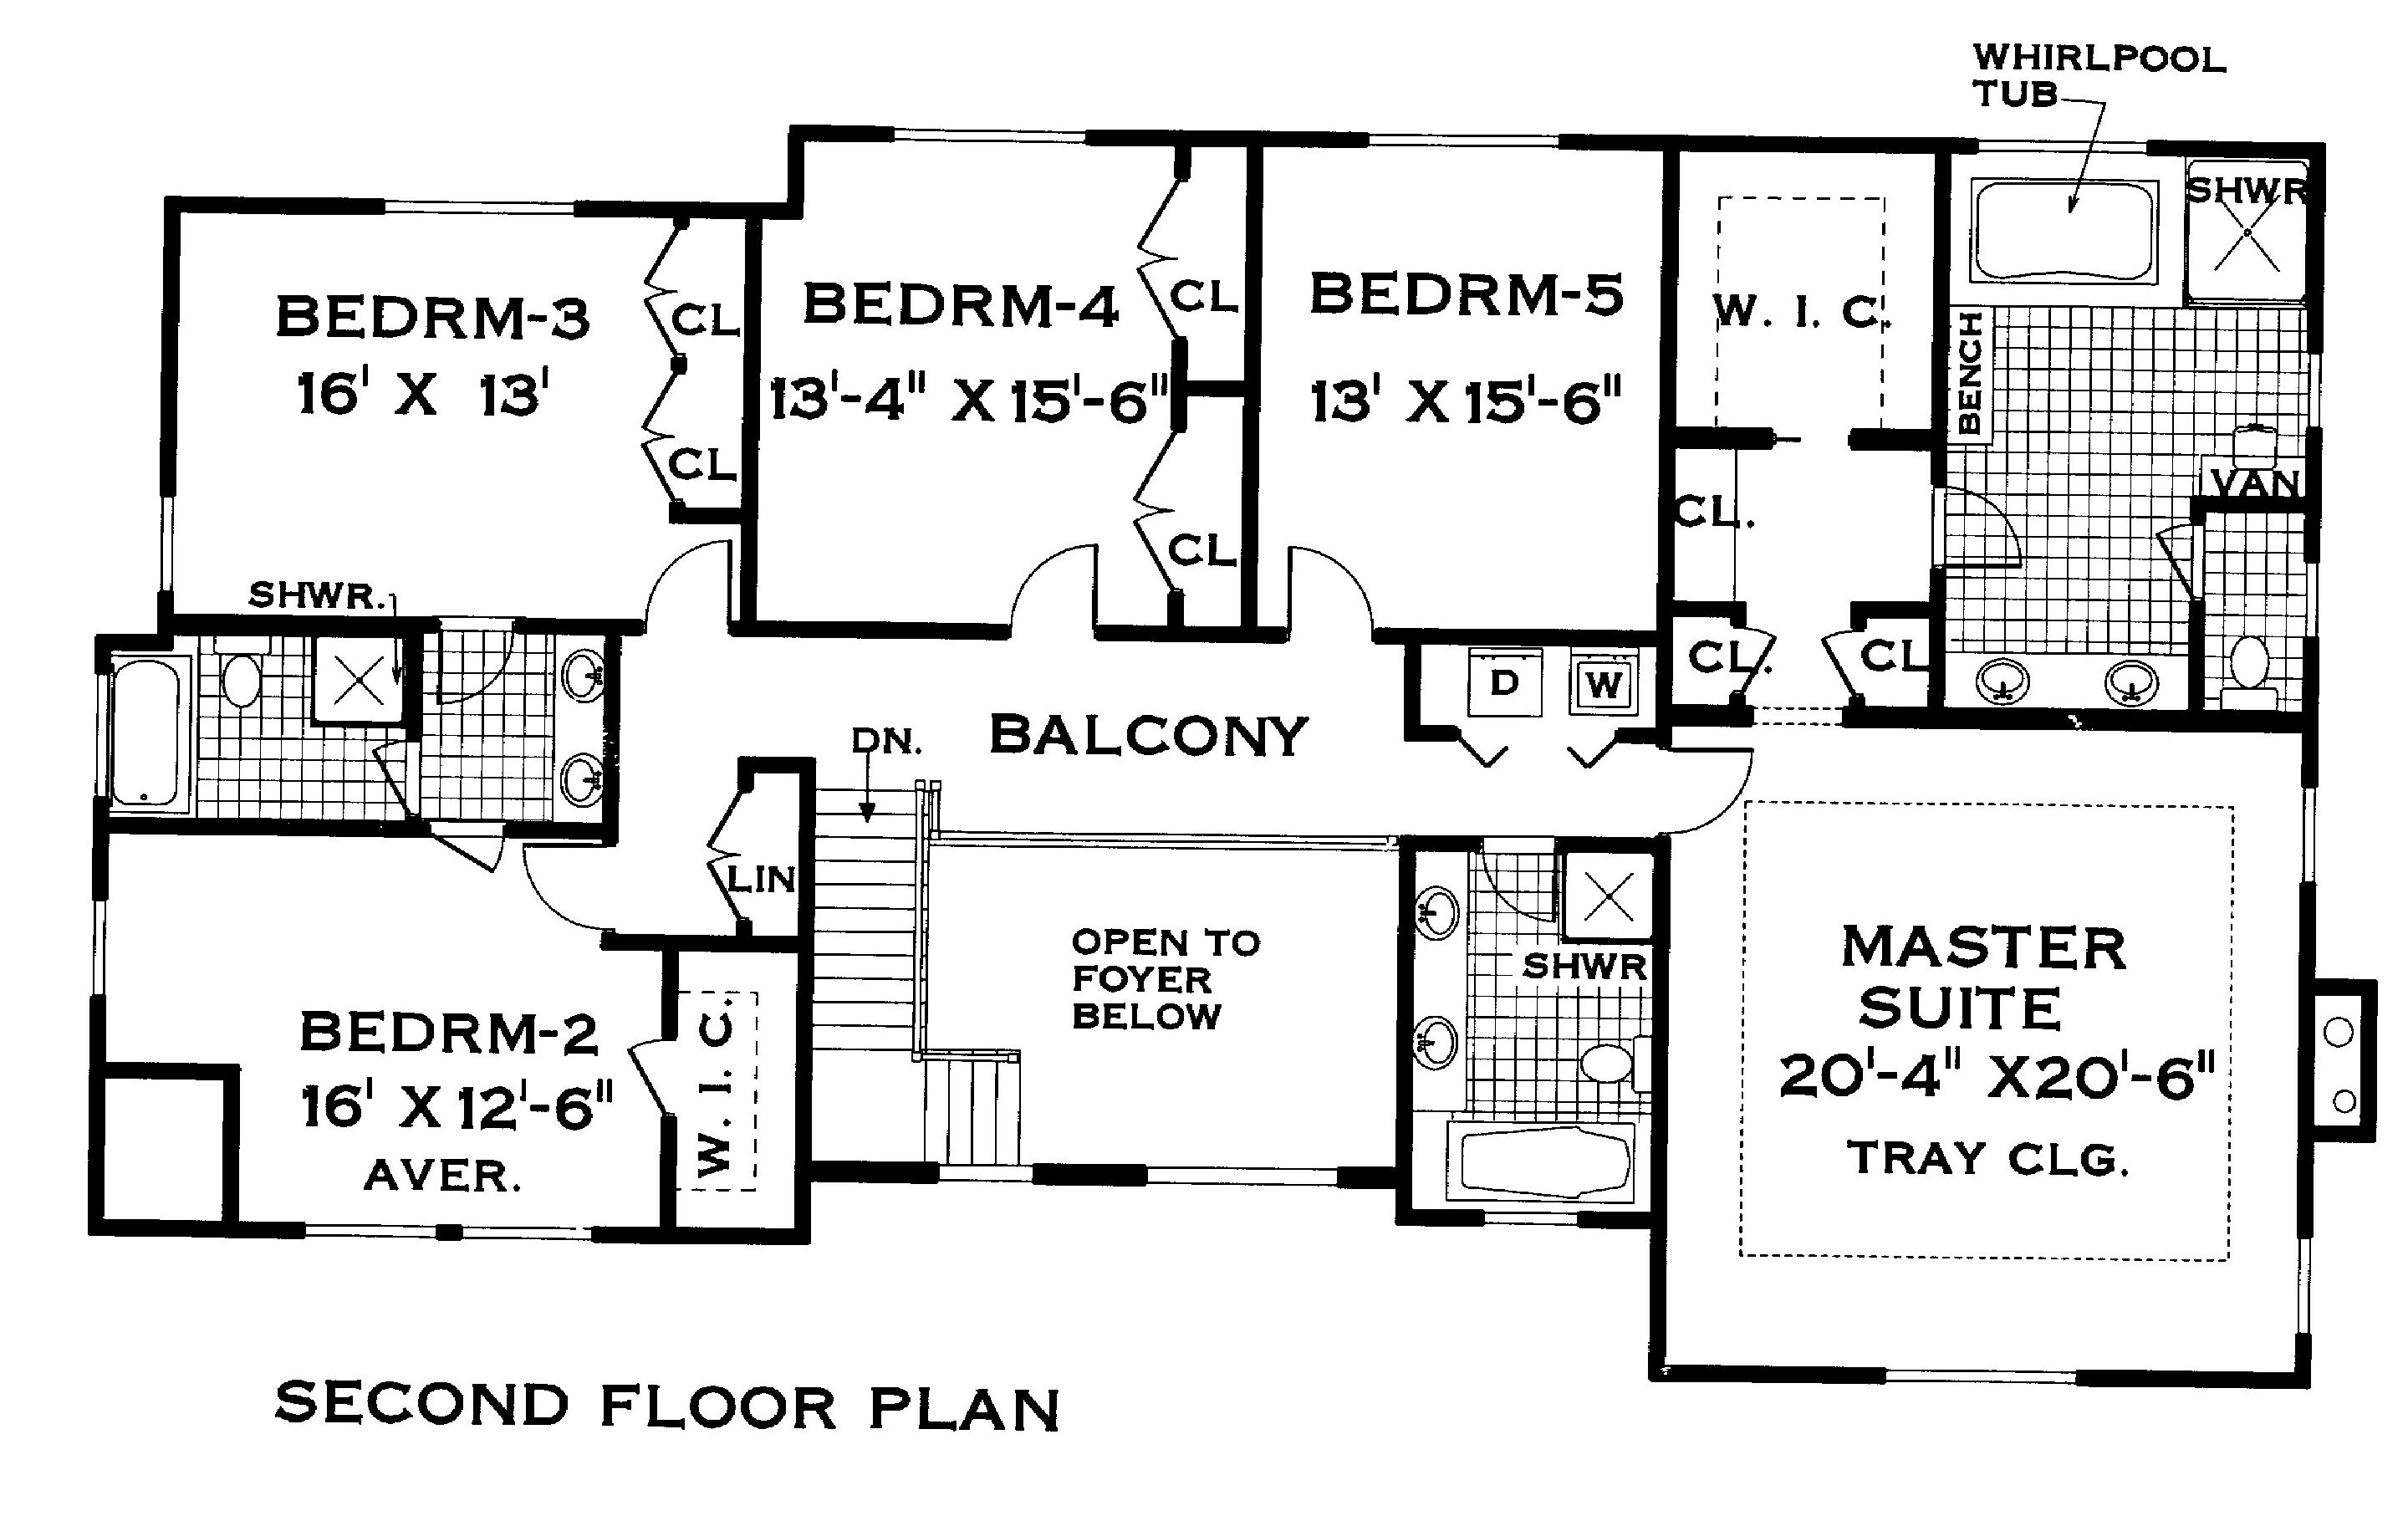 House floor plans with dimensions house plans home designs How to read plans for a house